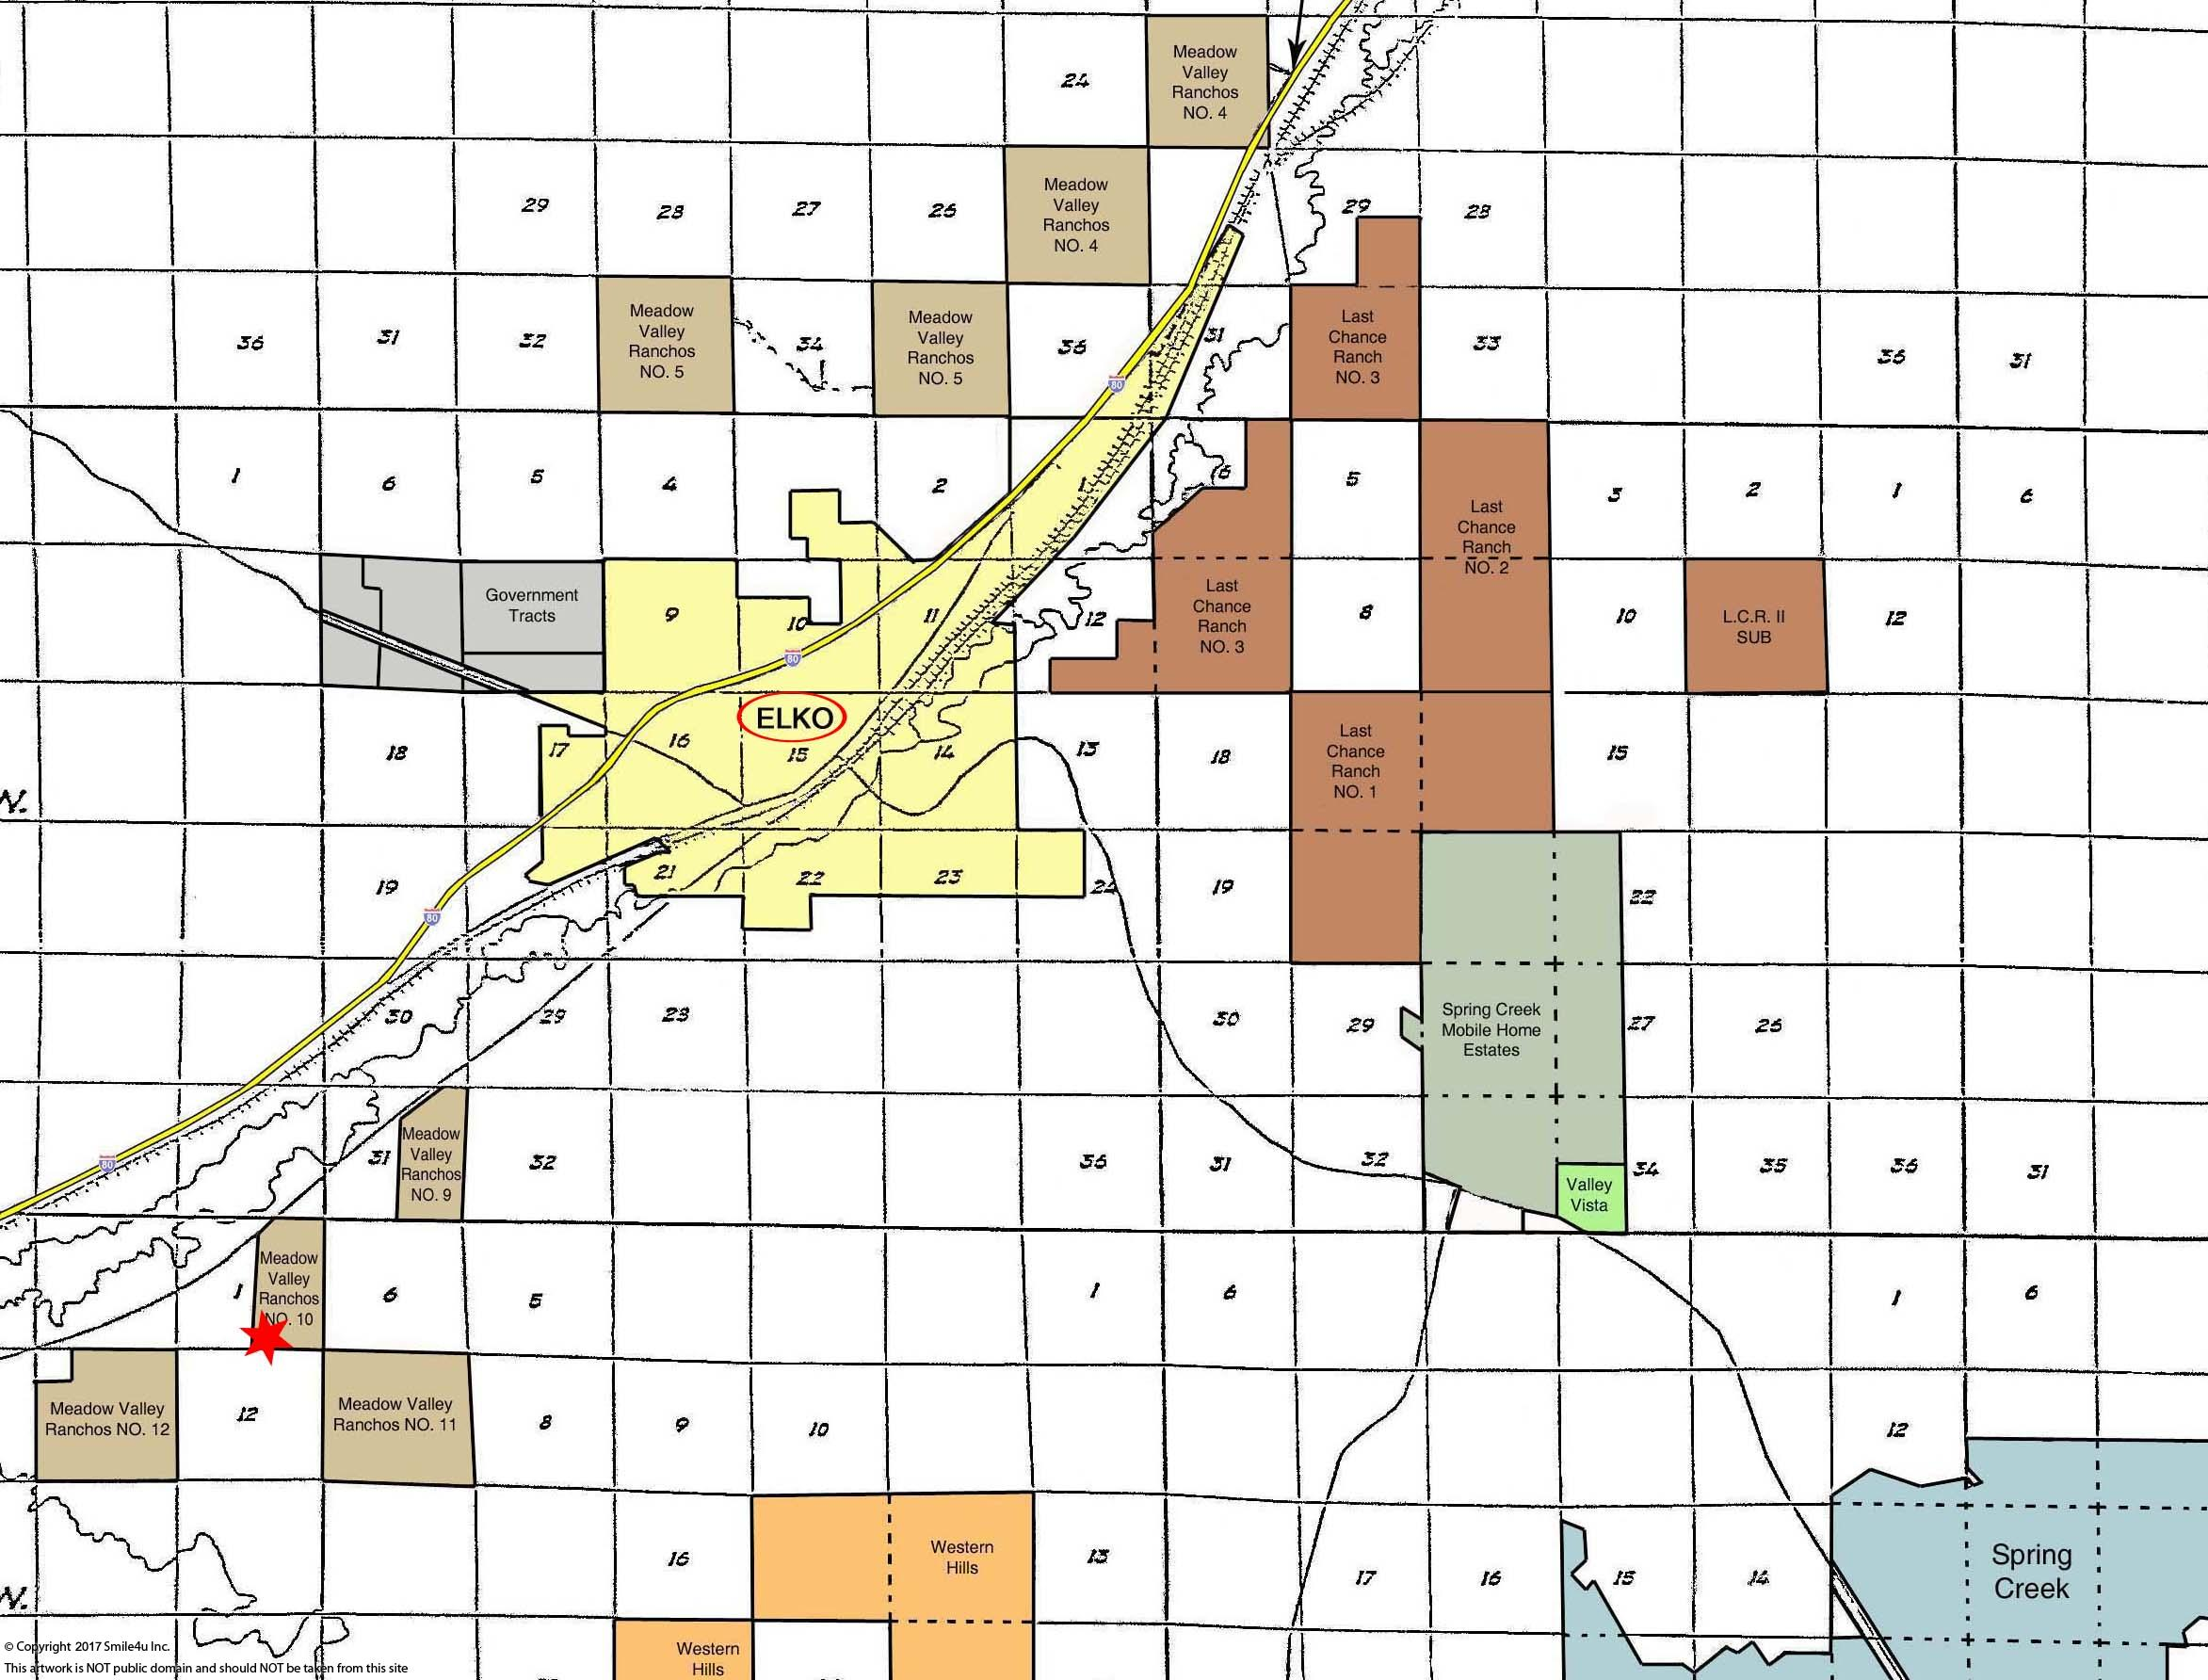 919350_watermarked_Color- Elko - T & R, Section, Subdivision Map 18x24.jpg